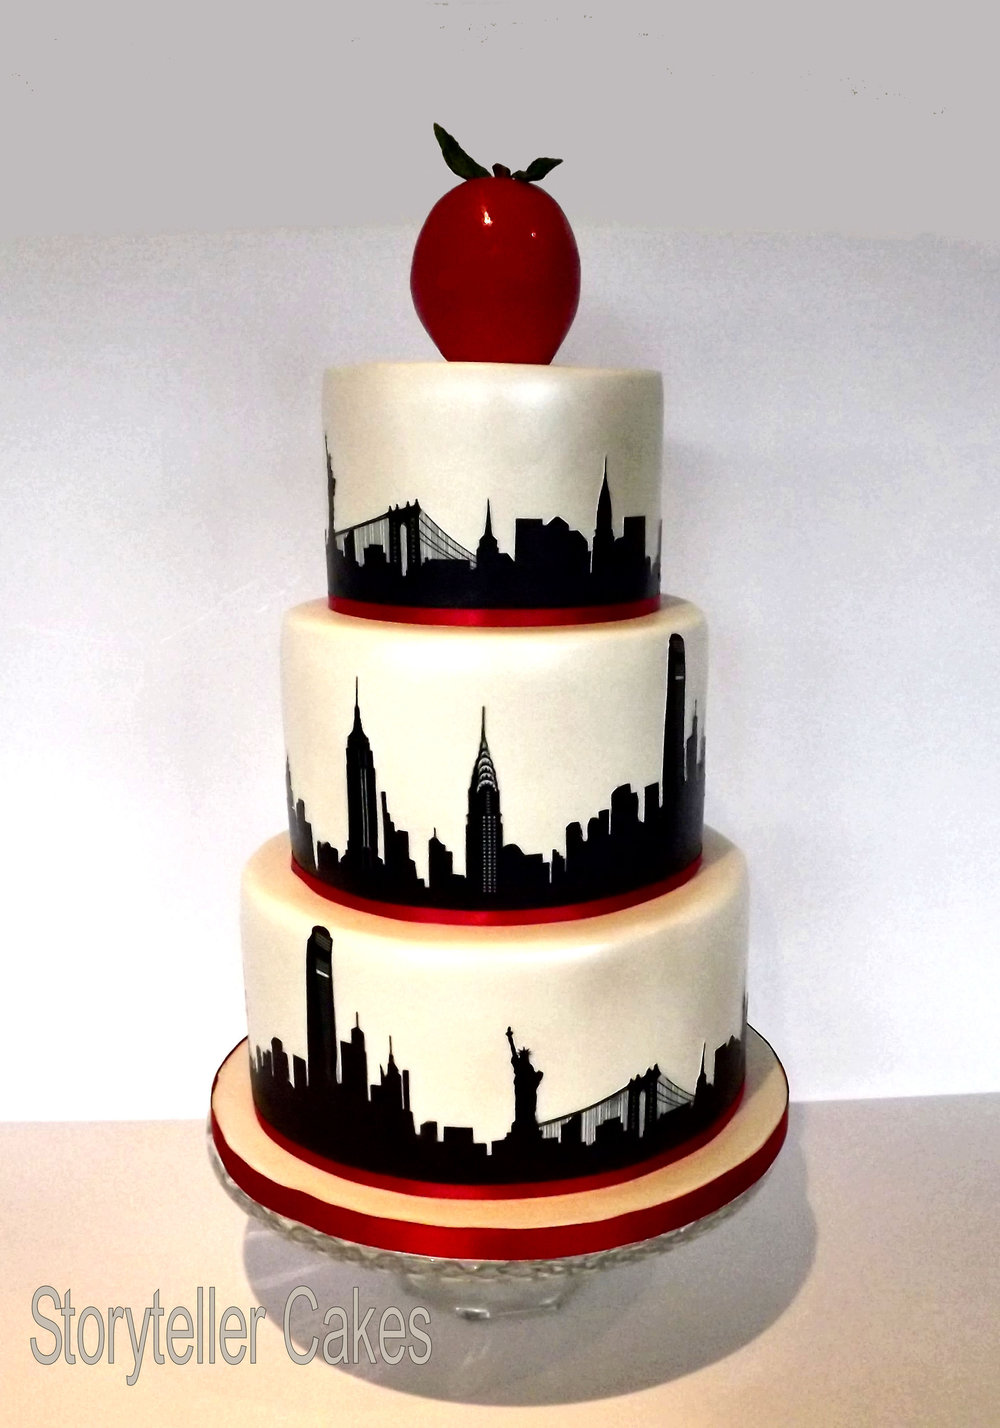 new york silloutette cake - watermark.jpg